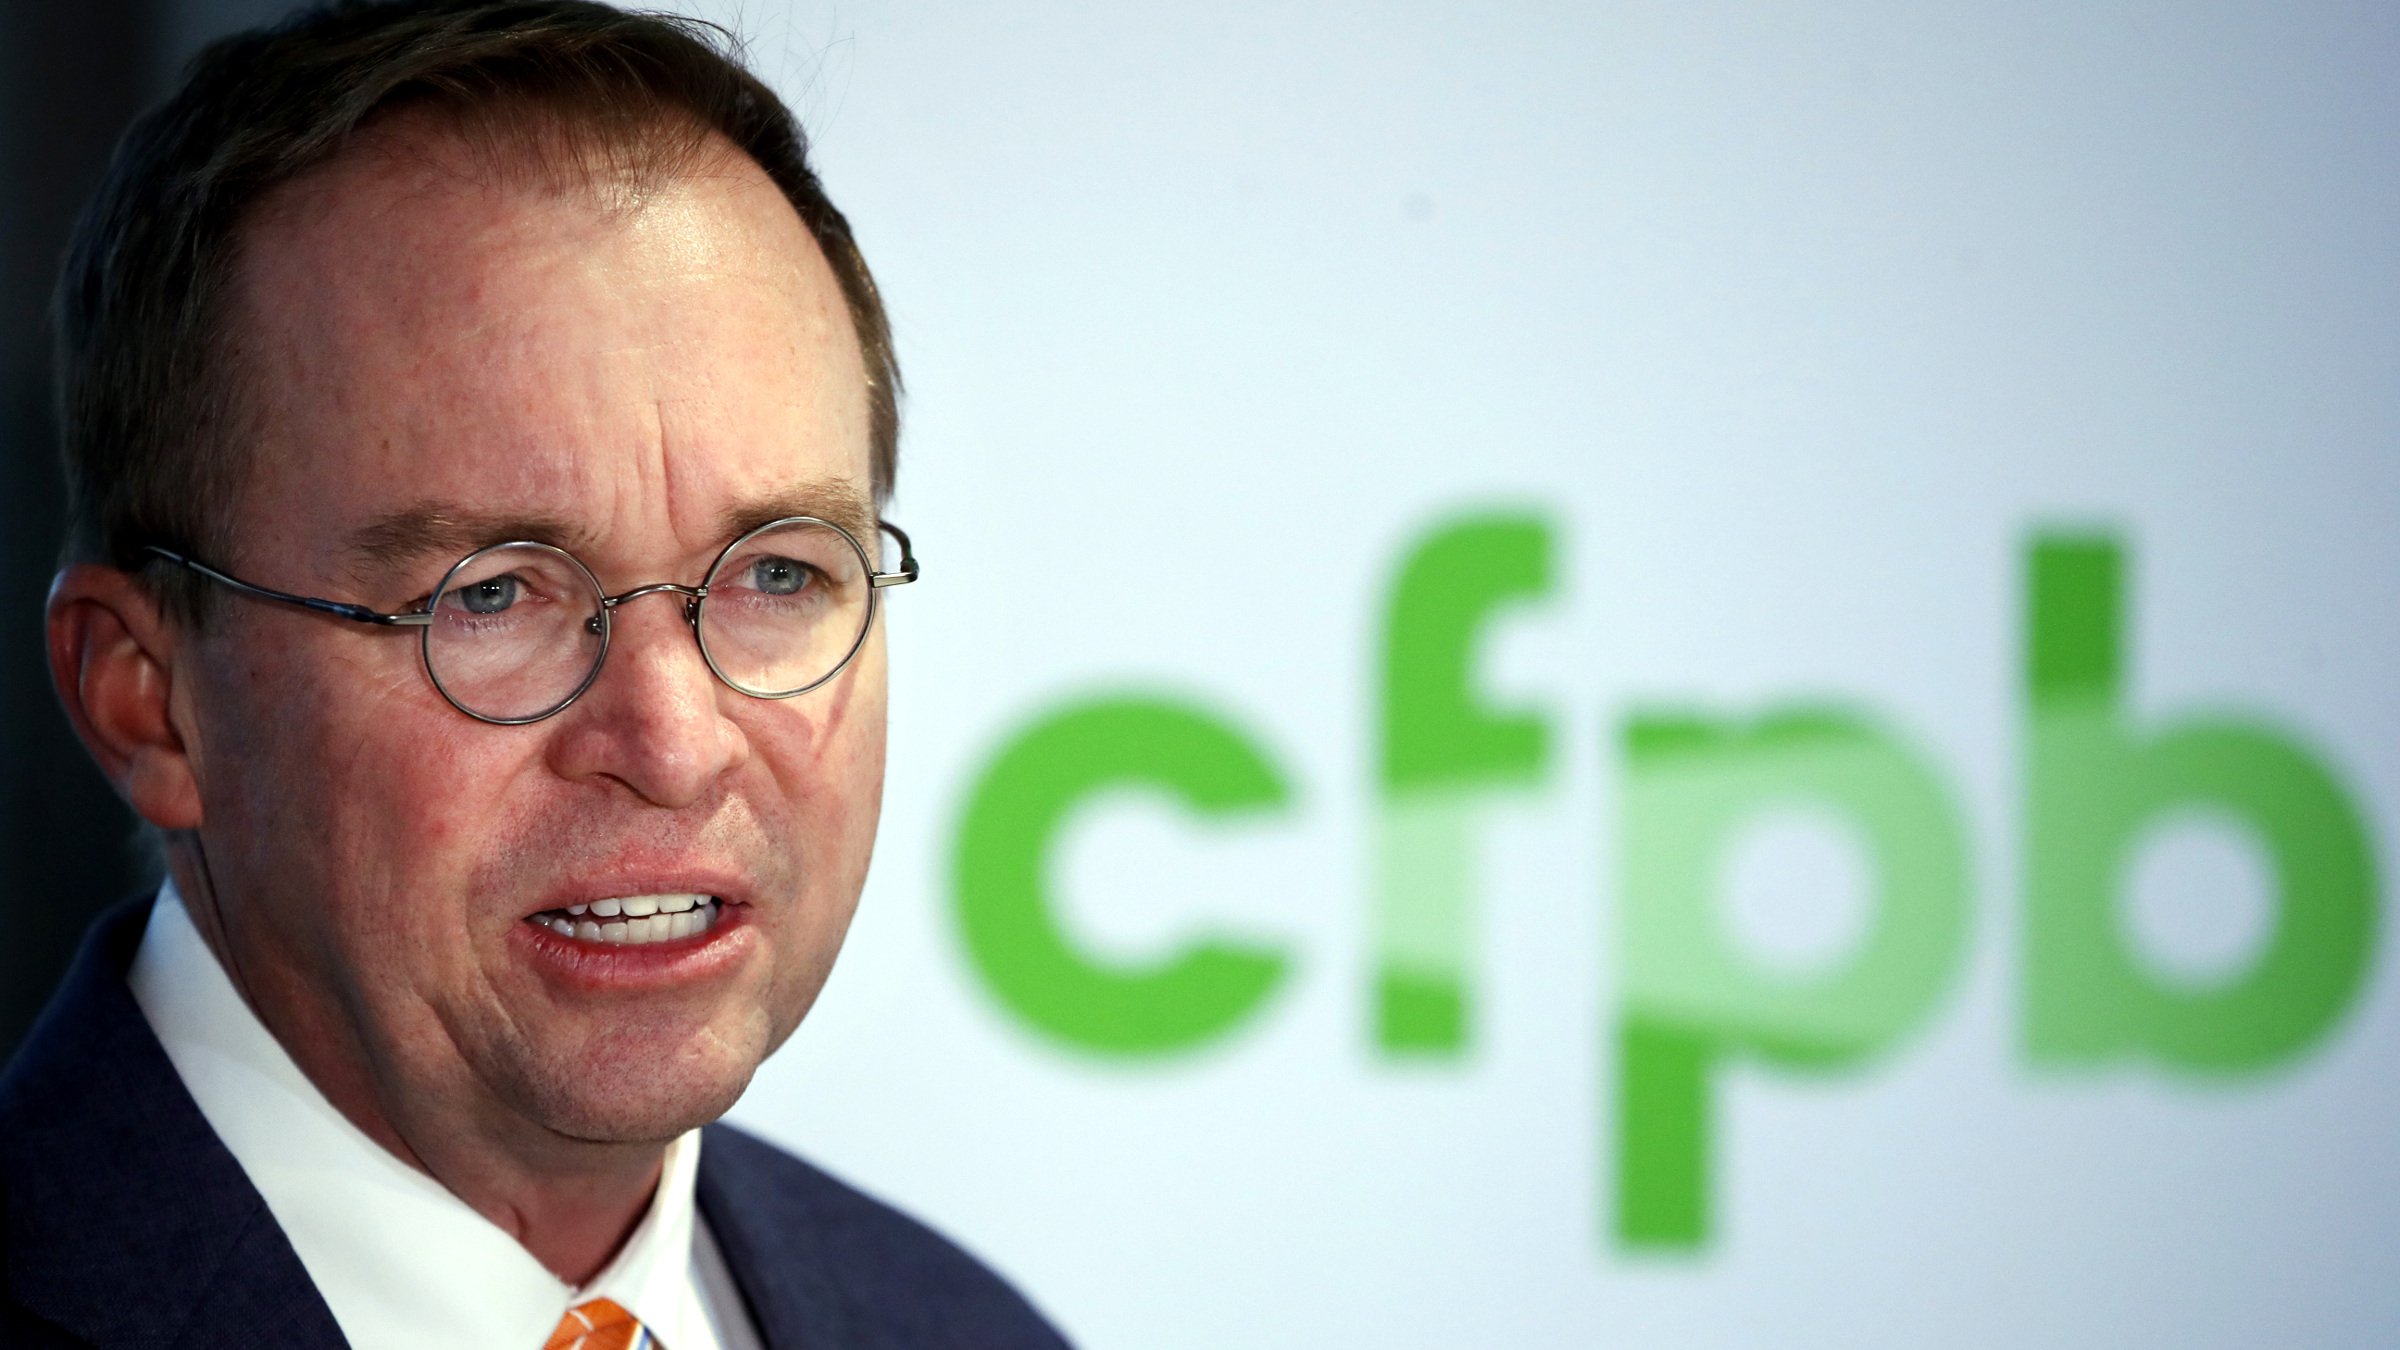 Mick Mulvaney speaks during a news conference after his first day as acting director of the Consumer Financial Protection Bureau in Washington, Monday, Nov. 27, 2017.